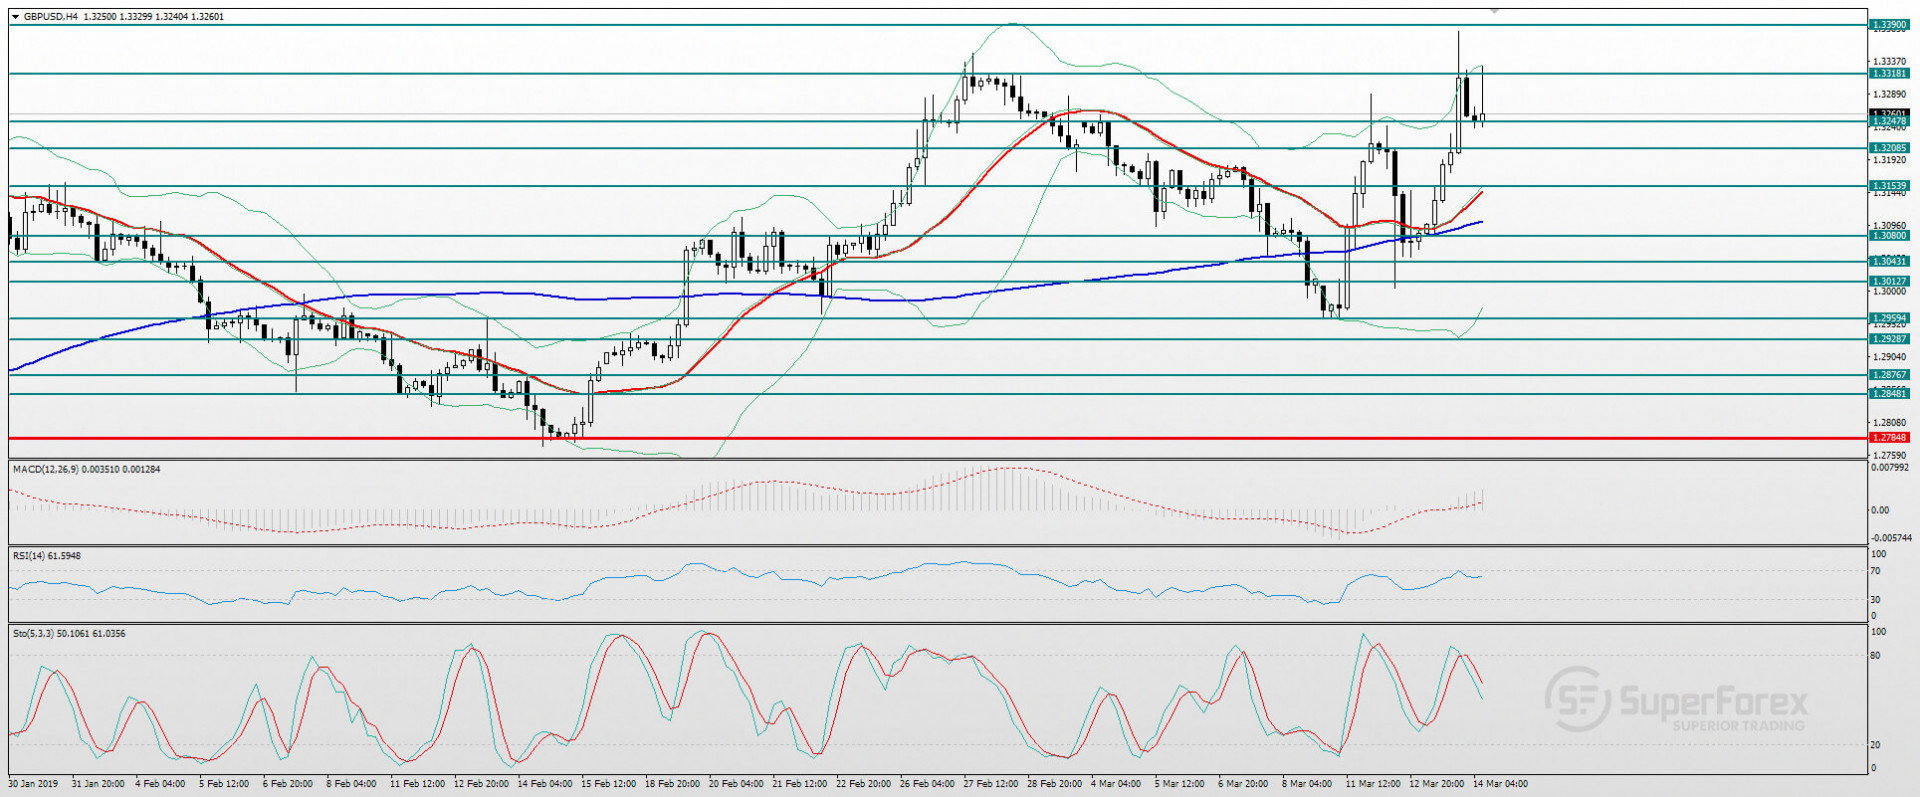 Name:  technical-analysis-of-the-pair-gbp-usd-for-march-14--1535--DW0Q4--o.jpg Views: 10 Size:  417.6 KB